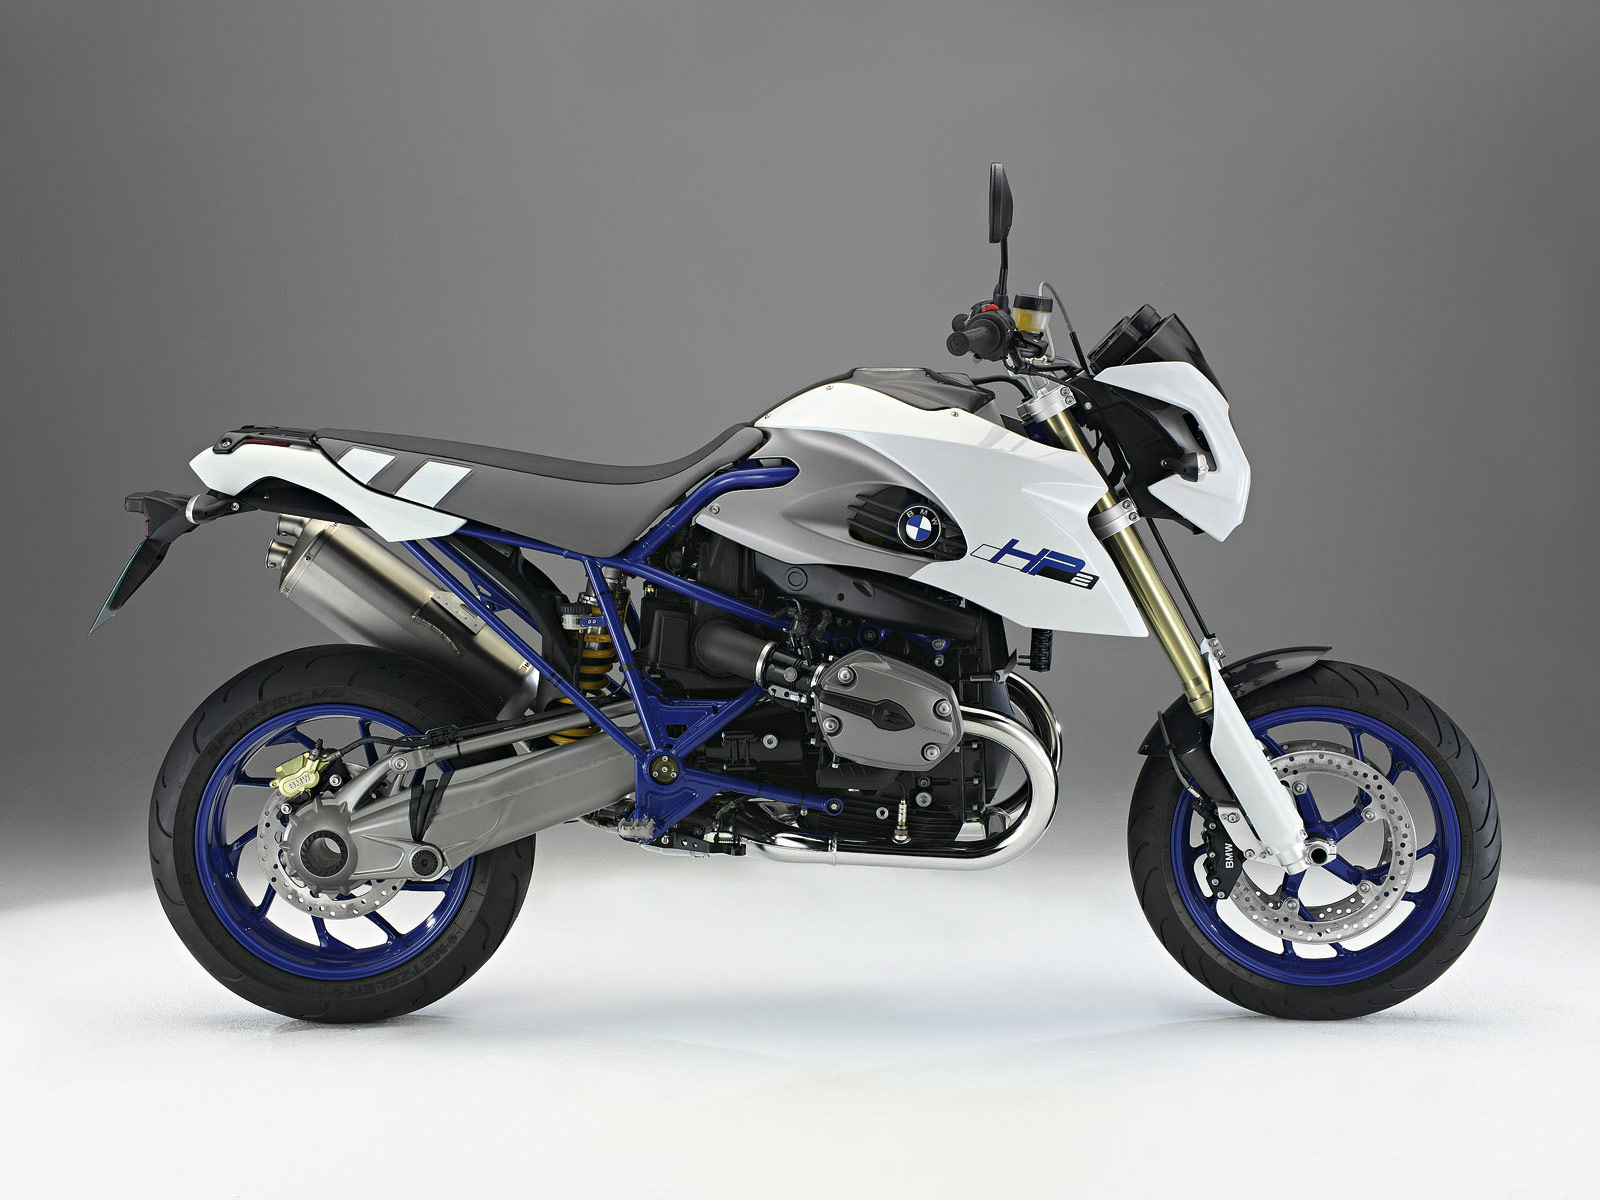 2011 BMW HP2 Megamoto motorcycle wallpapers, specifications.